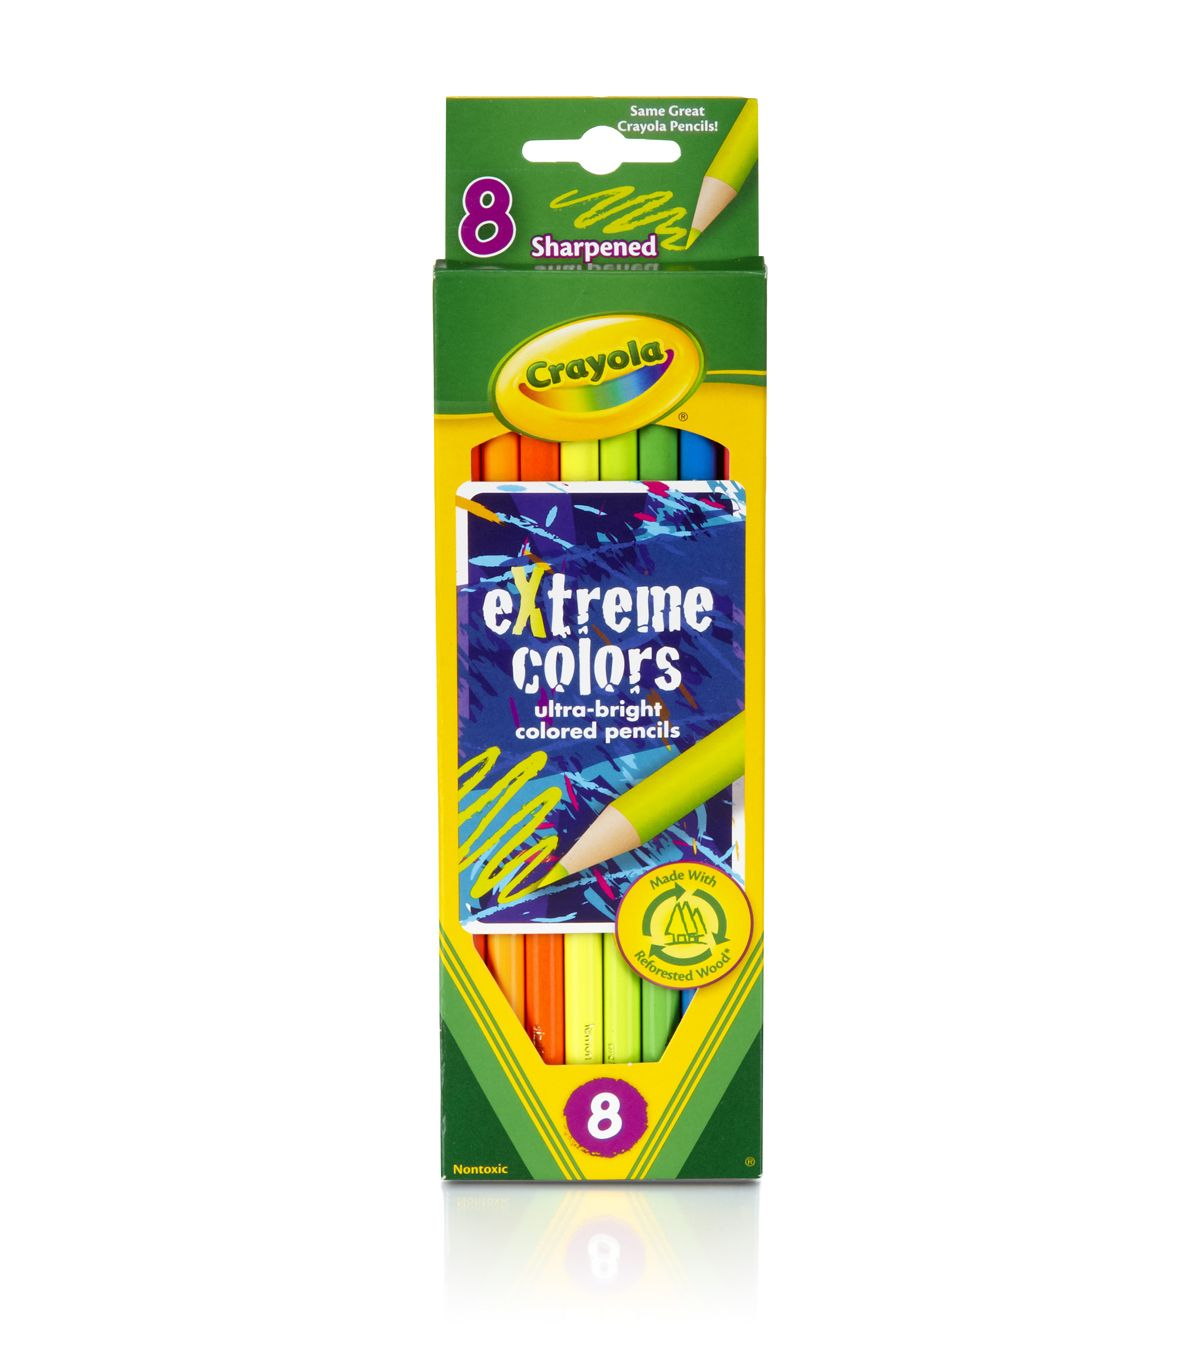 Crayola Extreme Colored Pencils 8 Pkg Long Colored Pencils